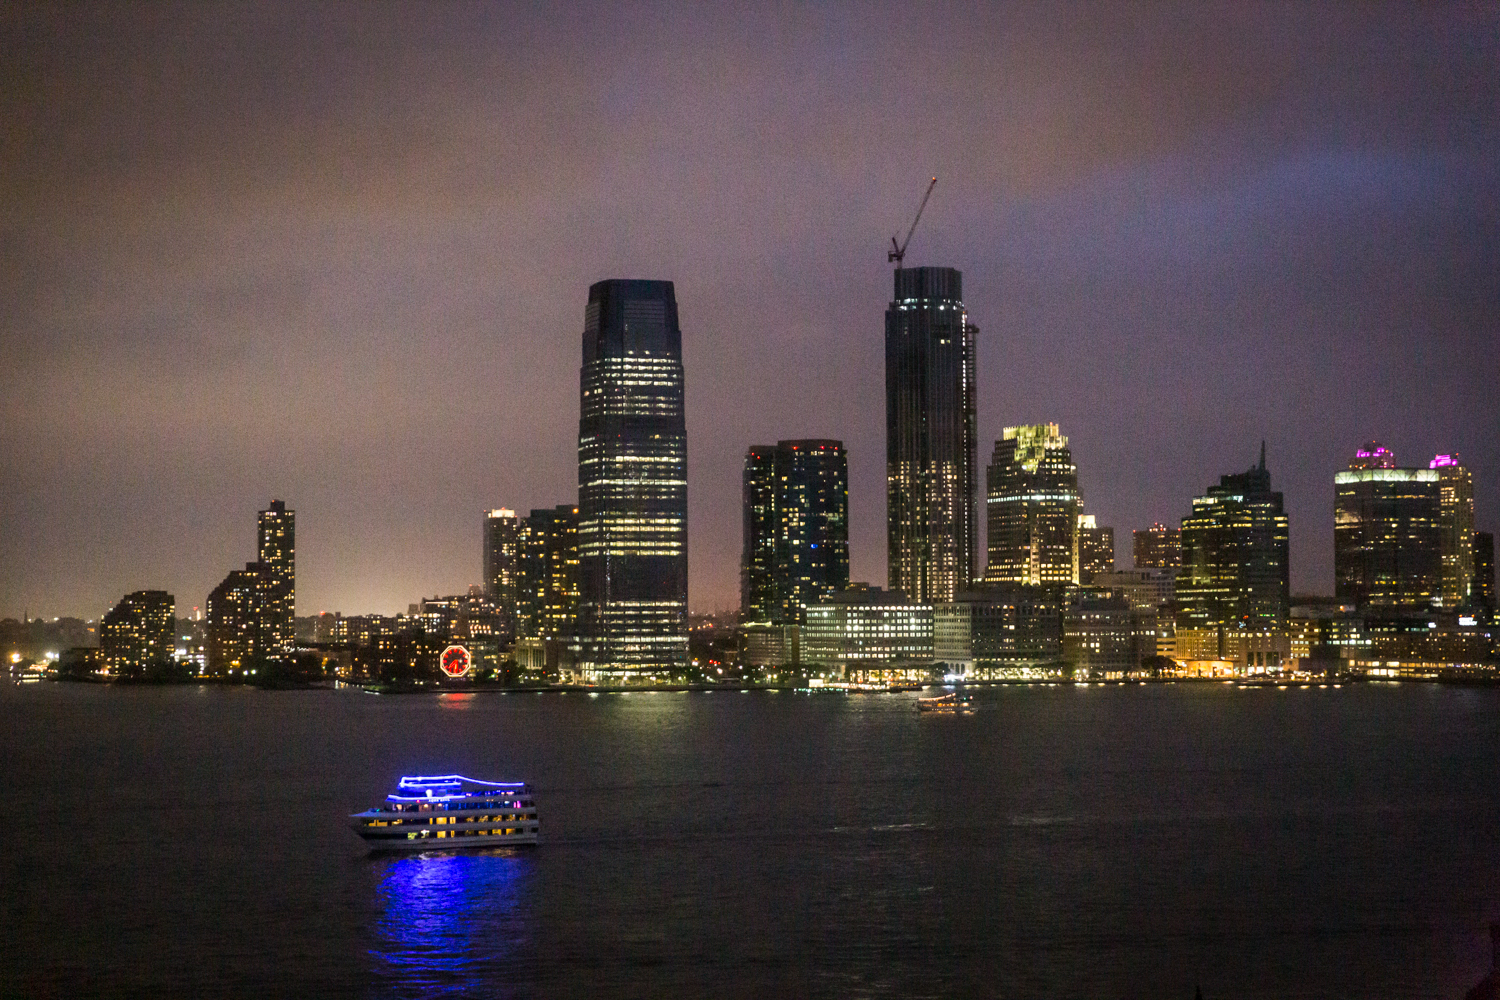 View of Hudson River waterfront at night